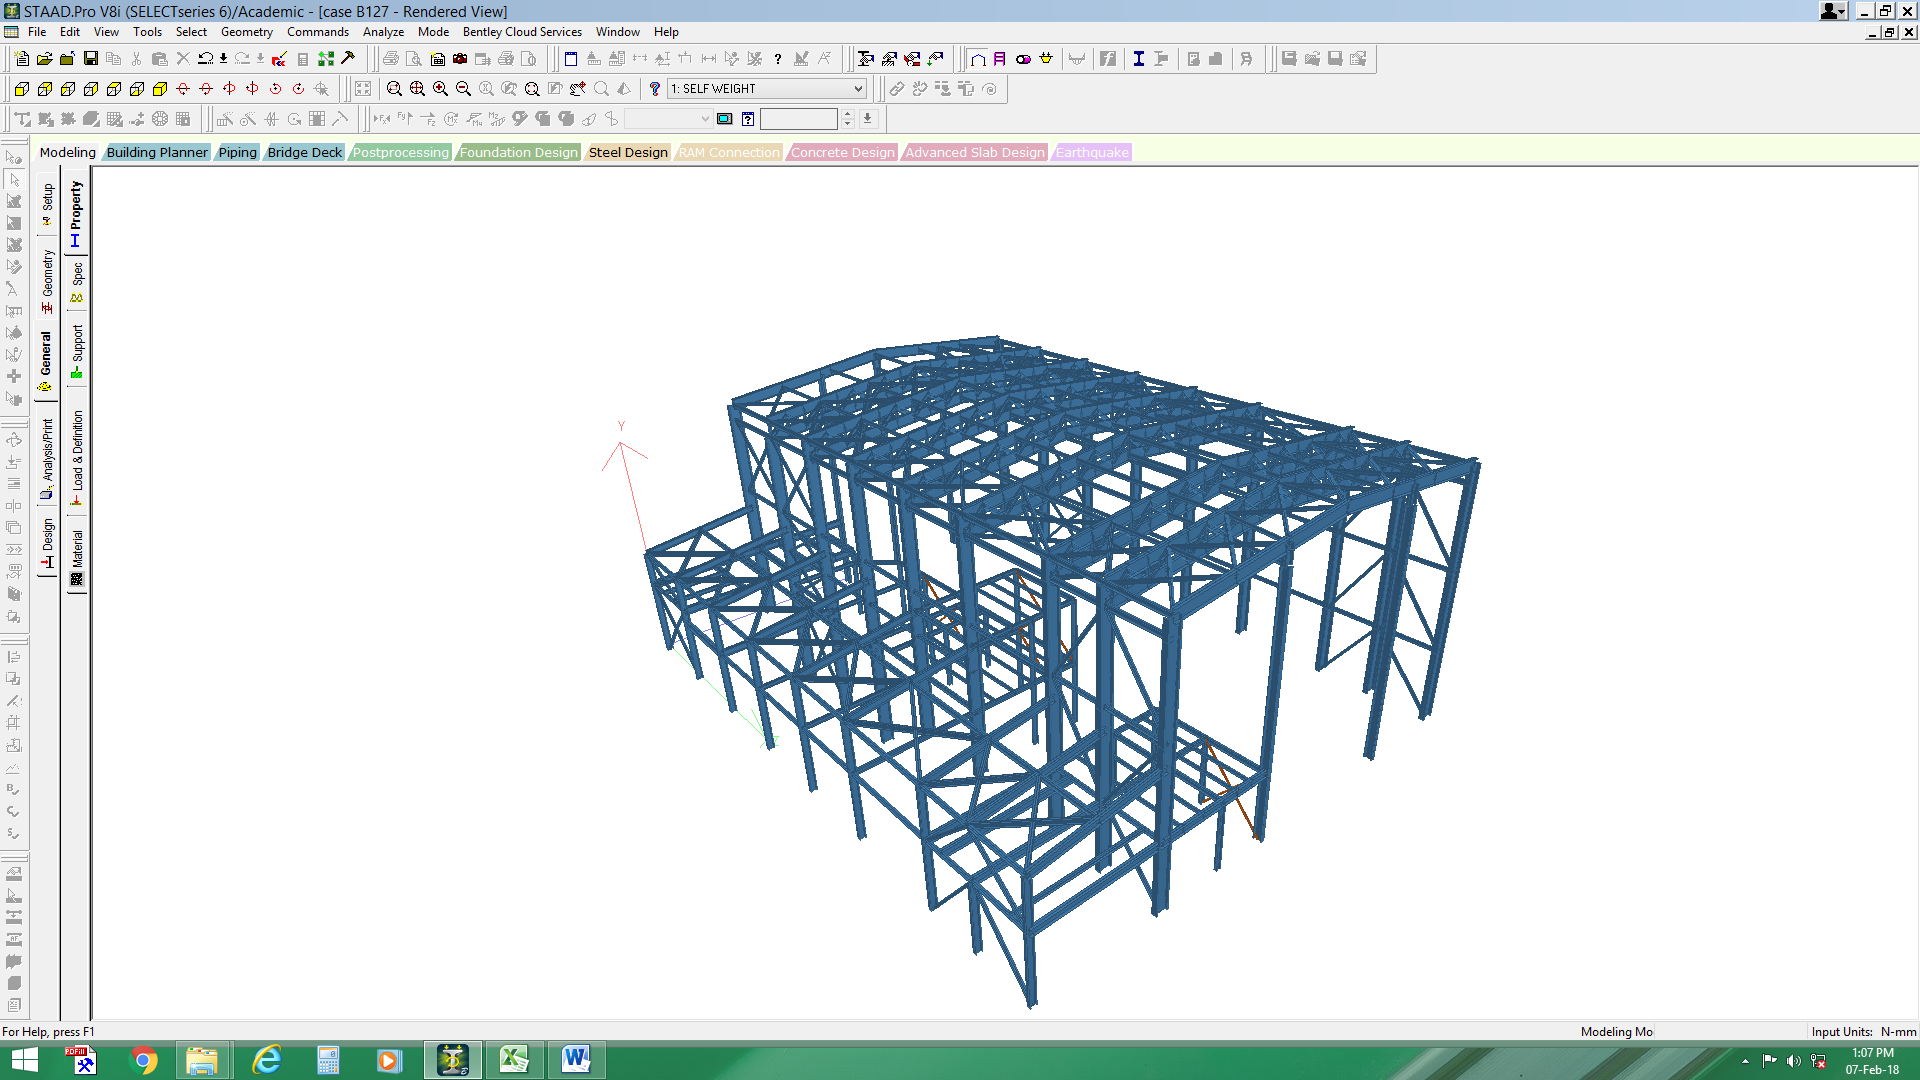 Steel structure for turbine operation building in Malaysia